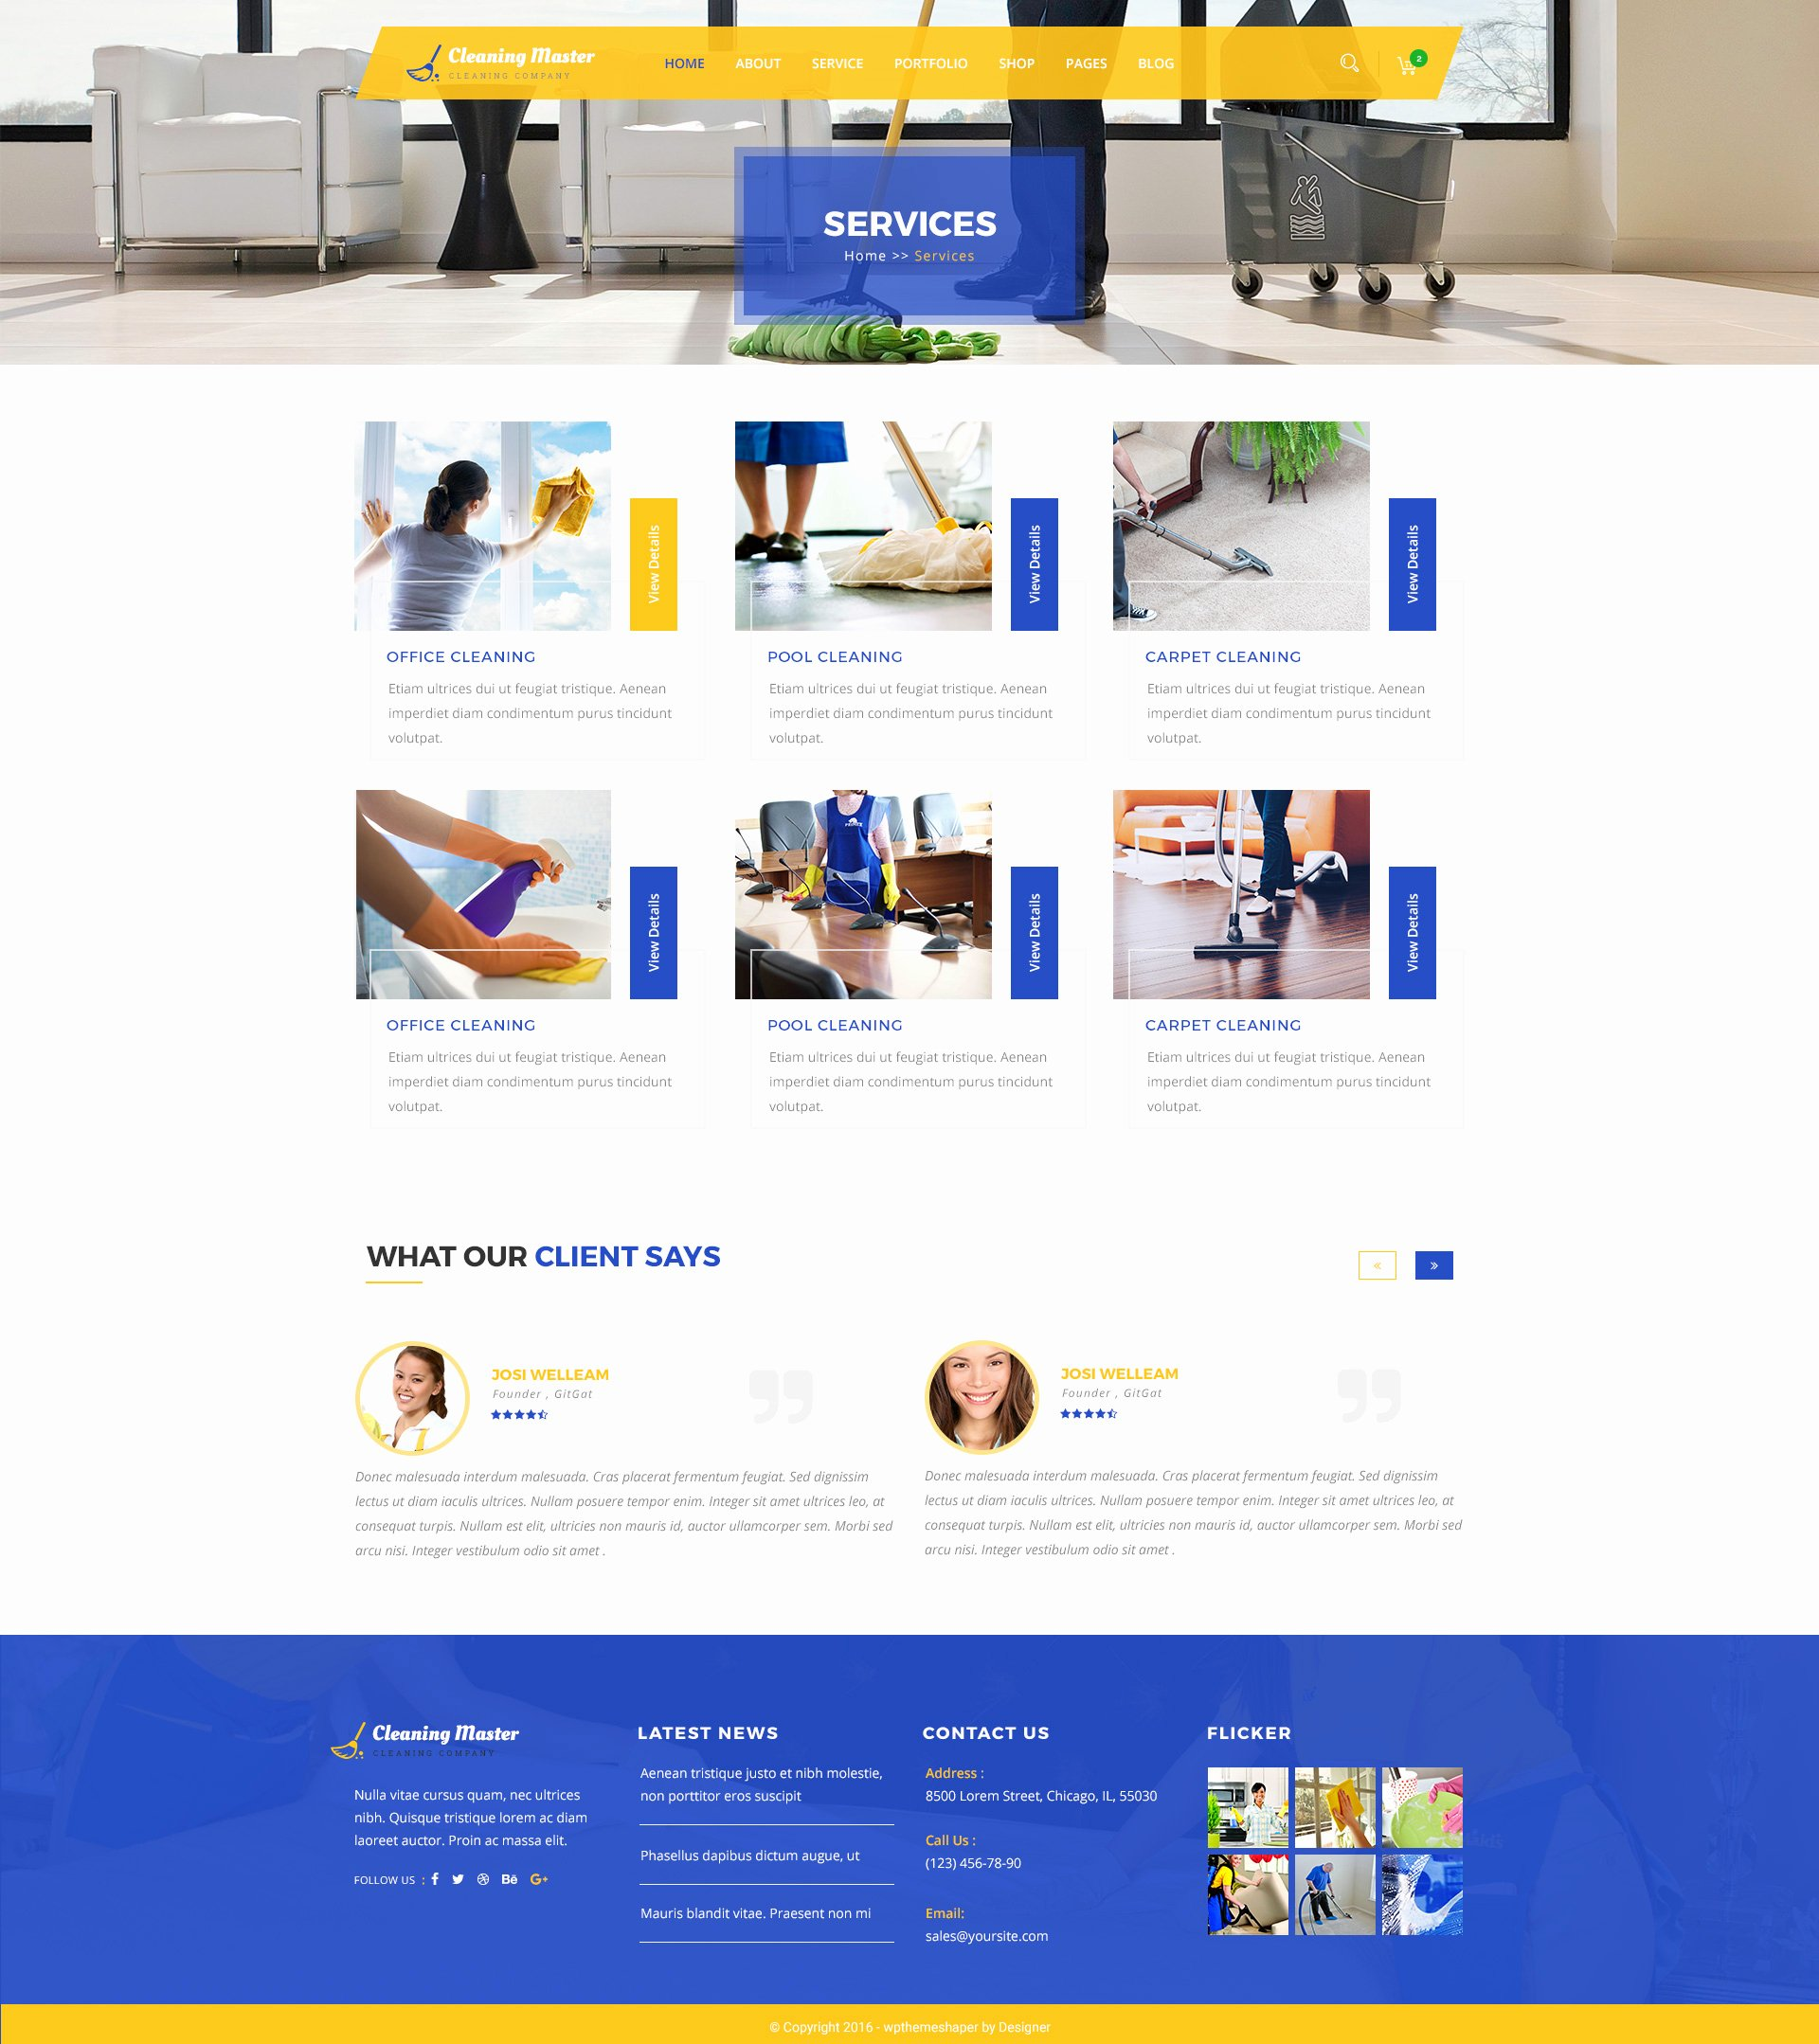 Cleaning Company Website Template Unique Clening Master Cleaning Pany Psd Template by